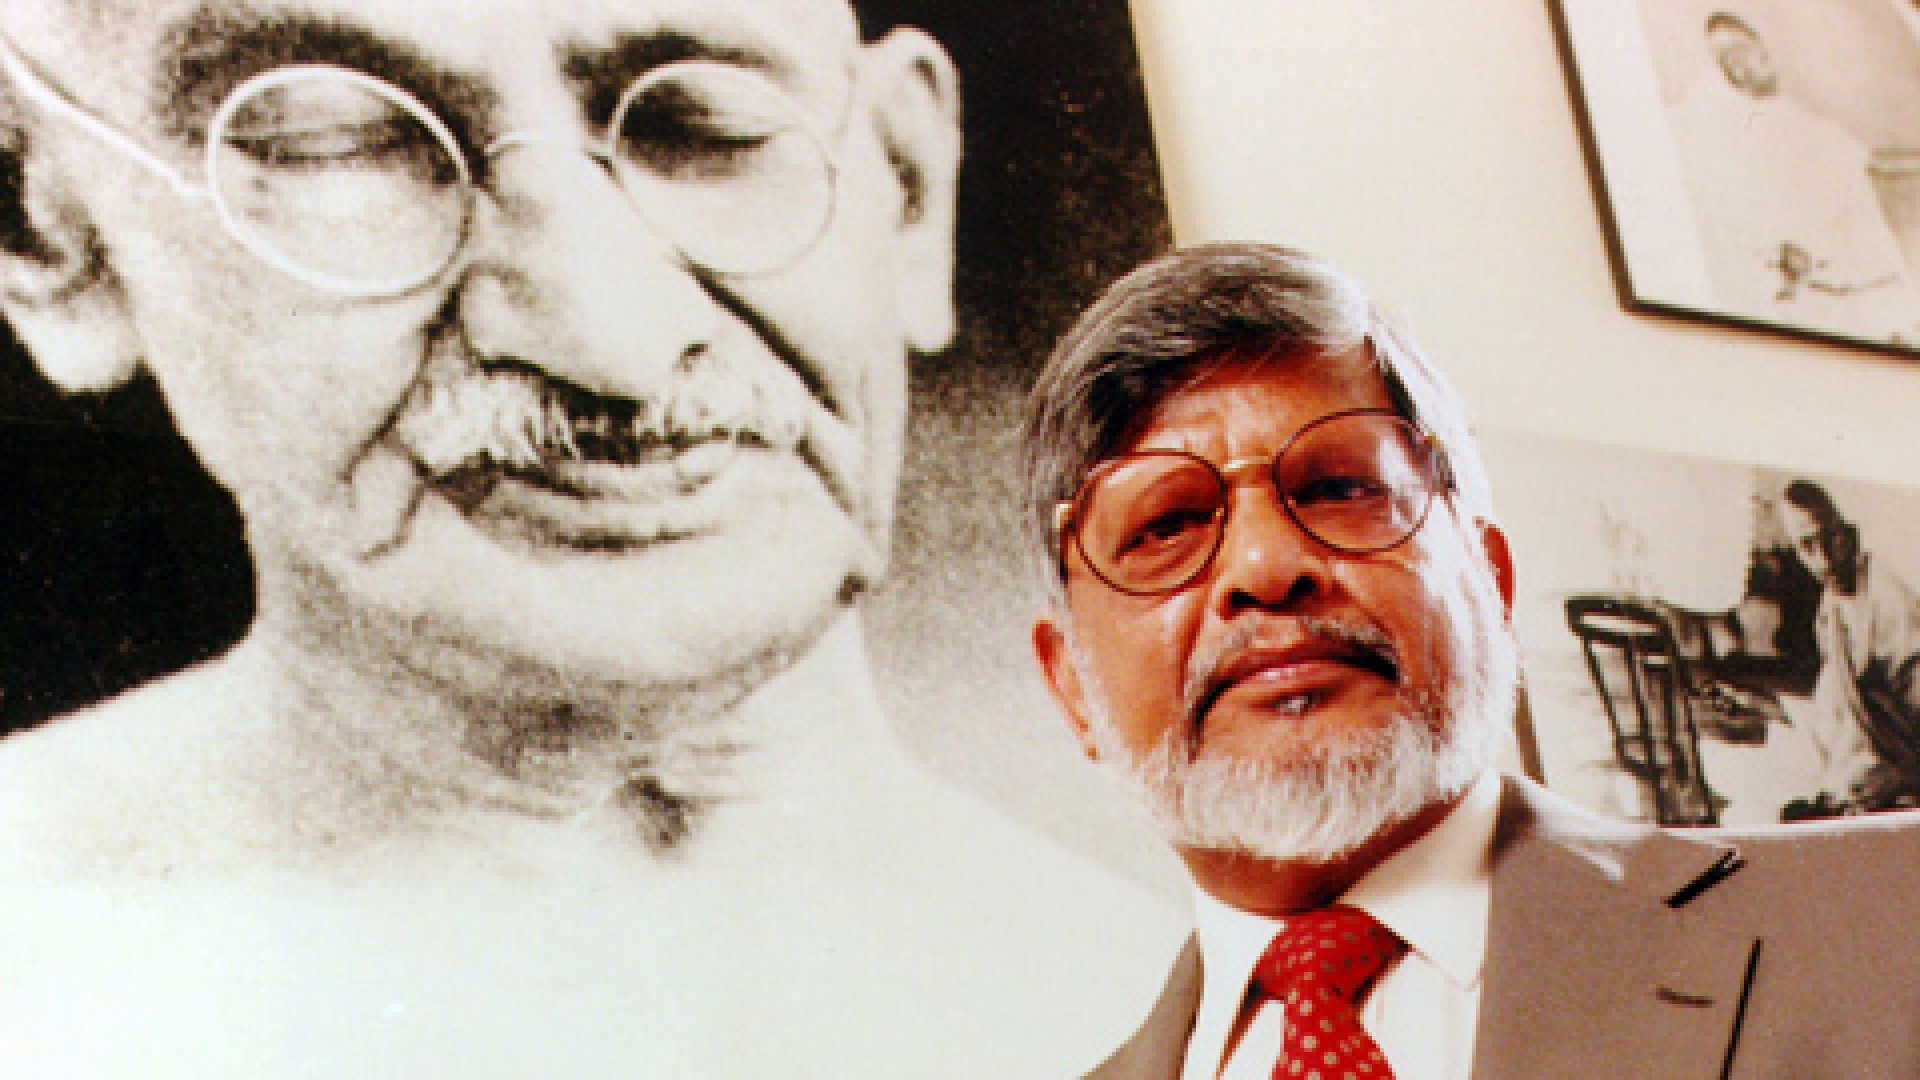 Arun Gandhi, founder of the M.K. Gandhi Institute for Nonviolence in Memphis, Tennessee, says nonviolence begins